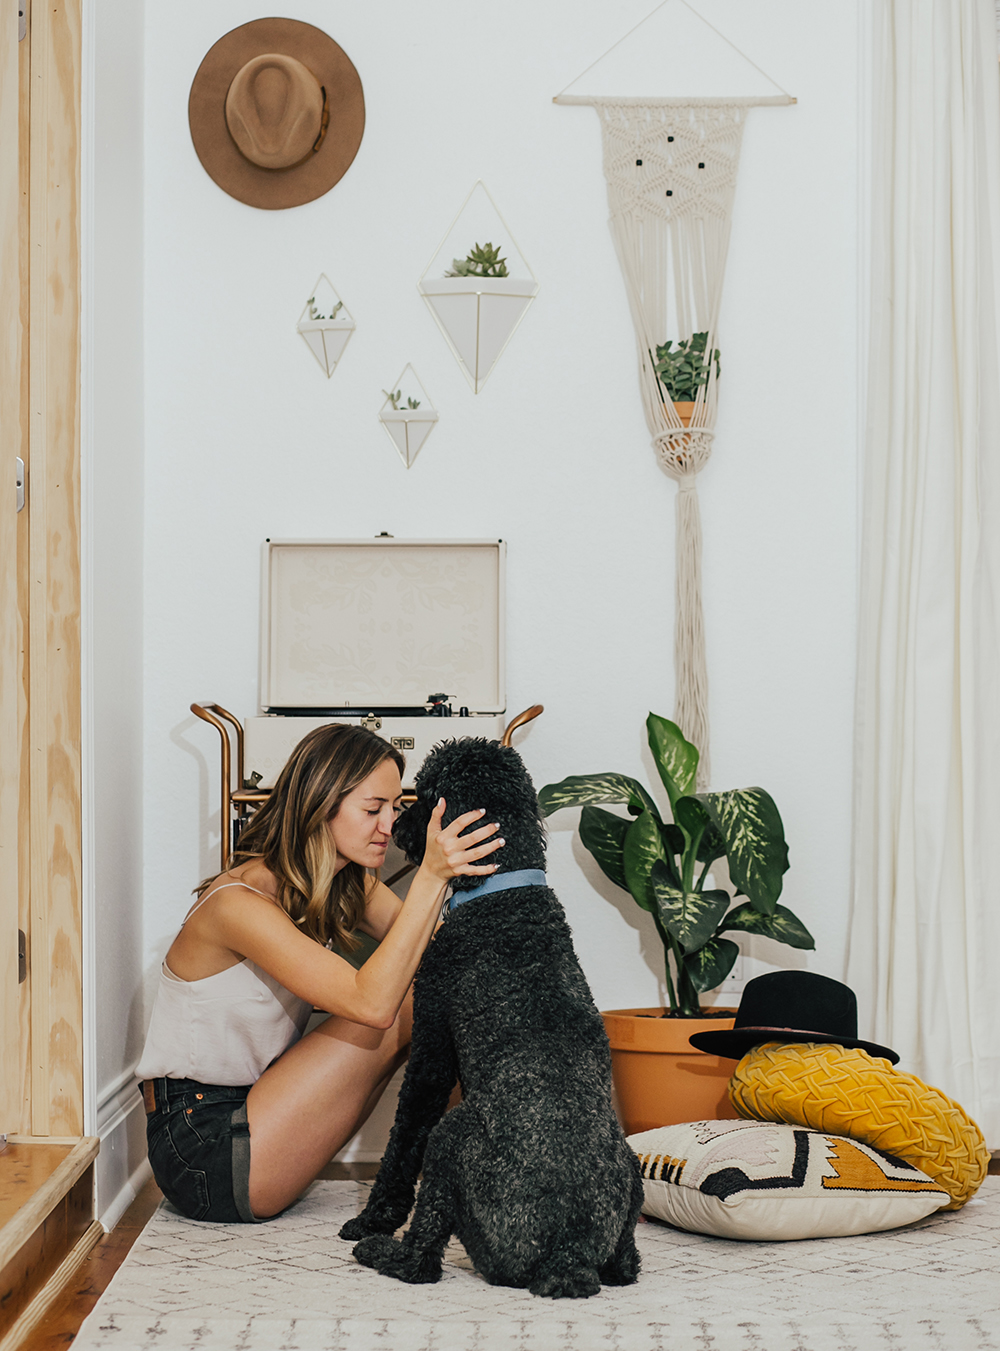 livvyland-blog-olivia-watson-austin-texas-fashion-blogger-urban-outfitters-record-player-nook-room-setup-holder-interior-boho-style-levis-wedgie-shorts-9